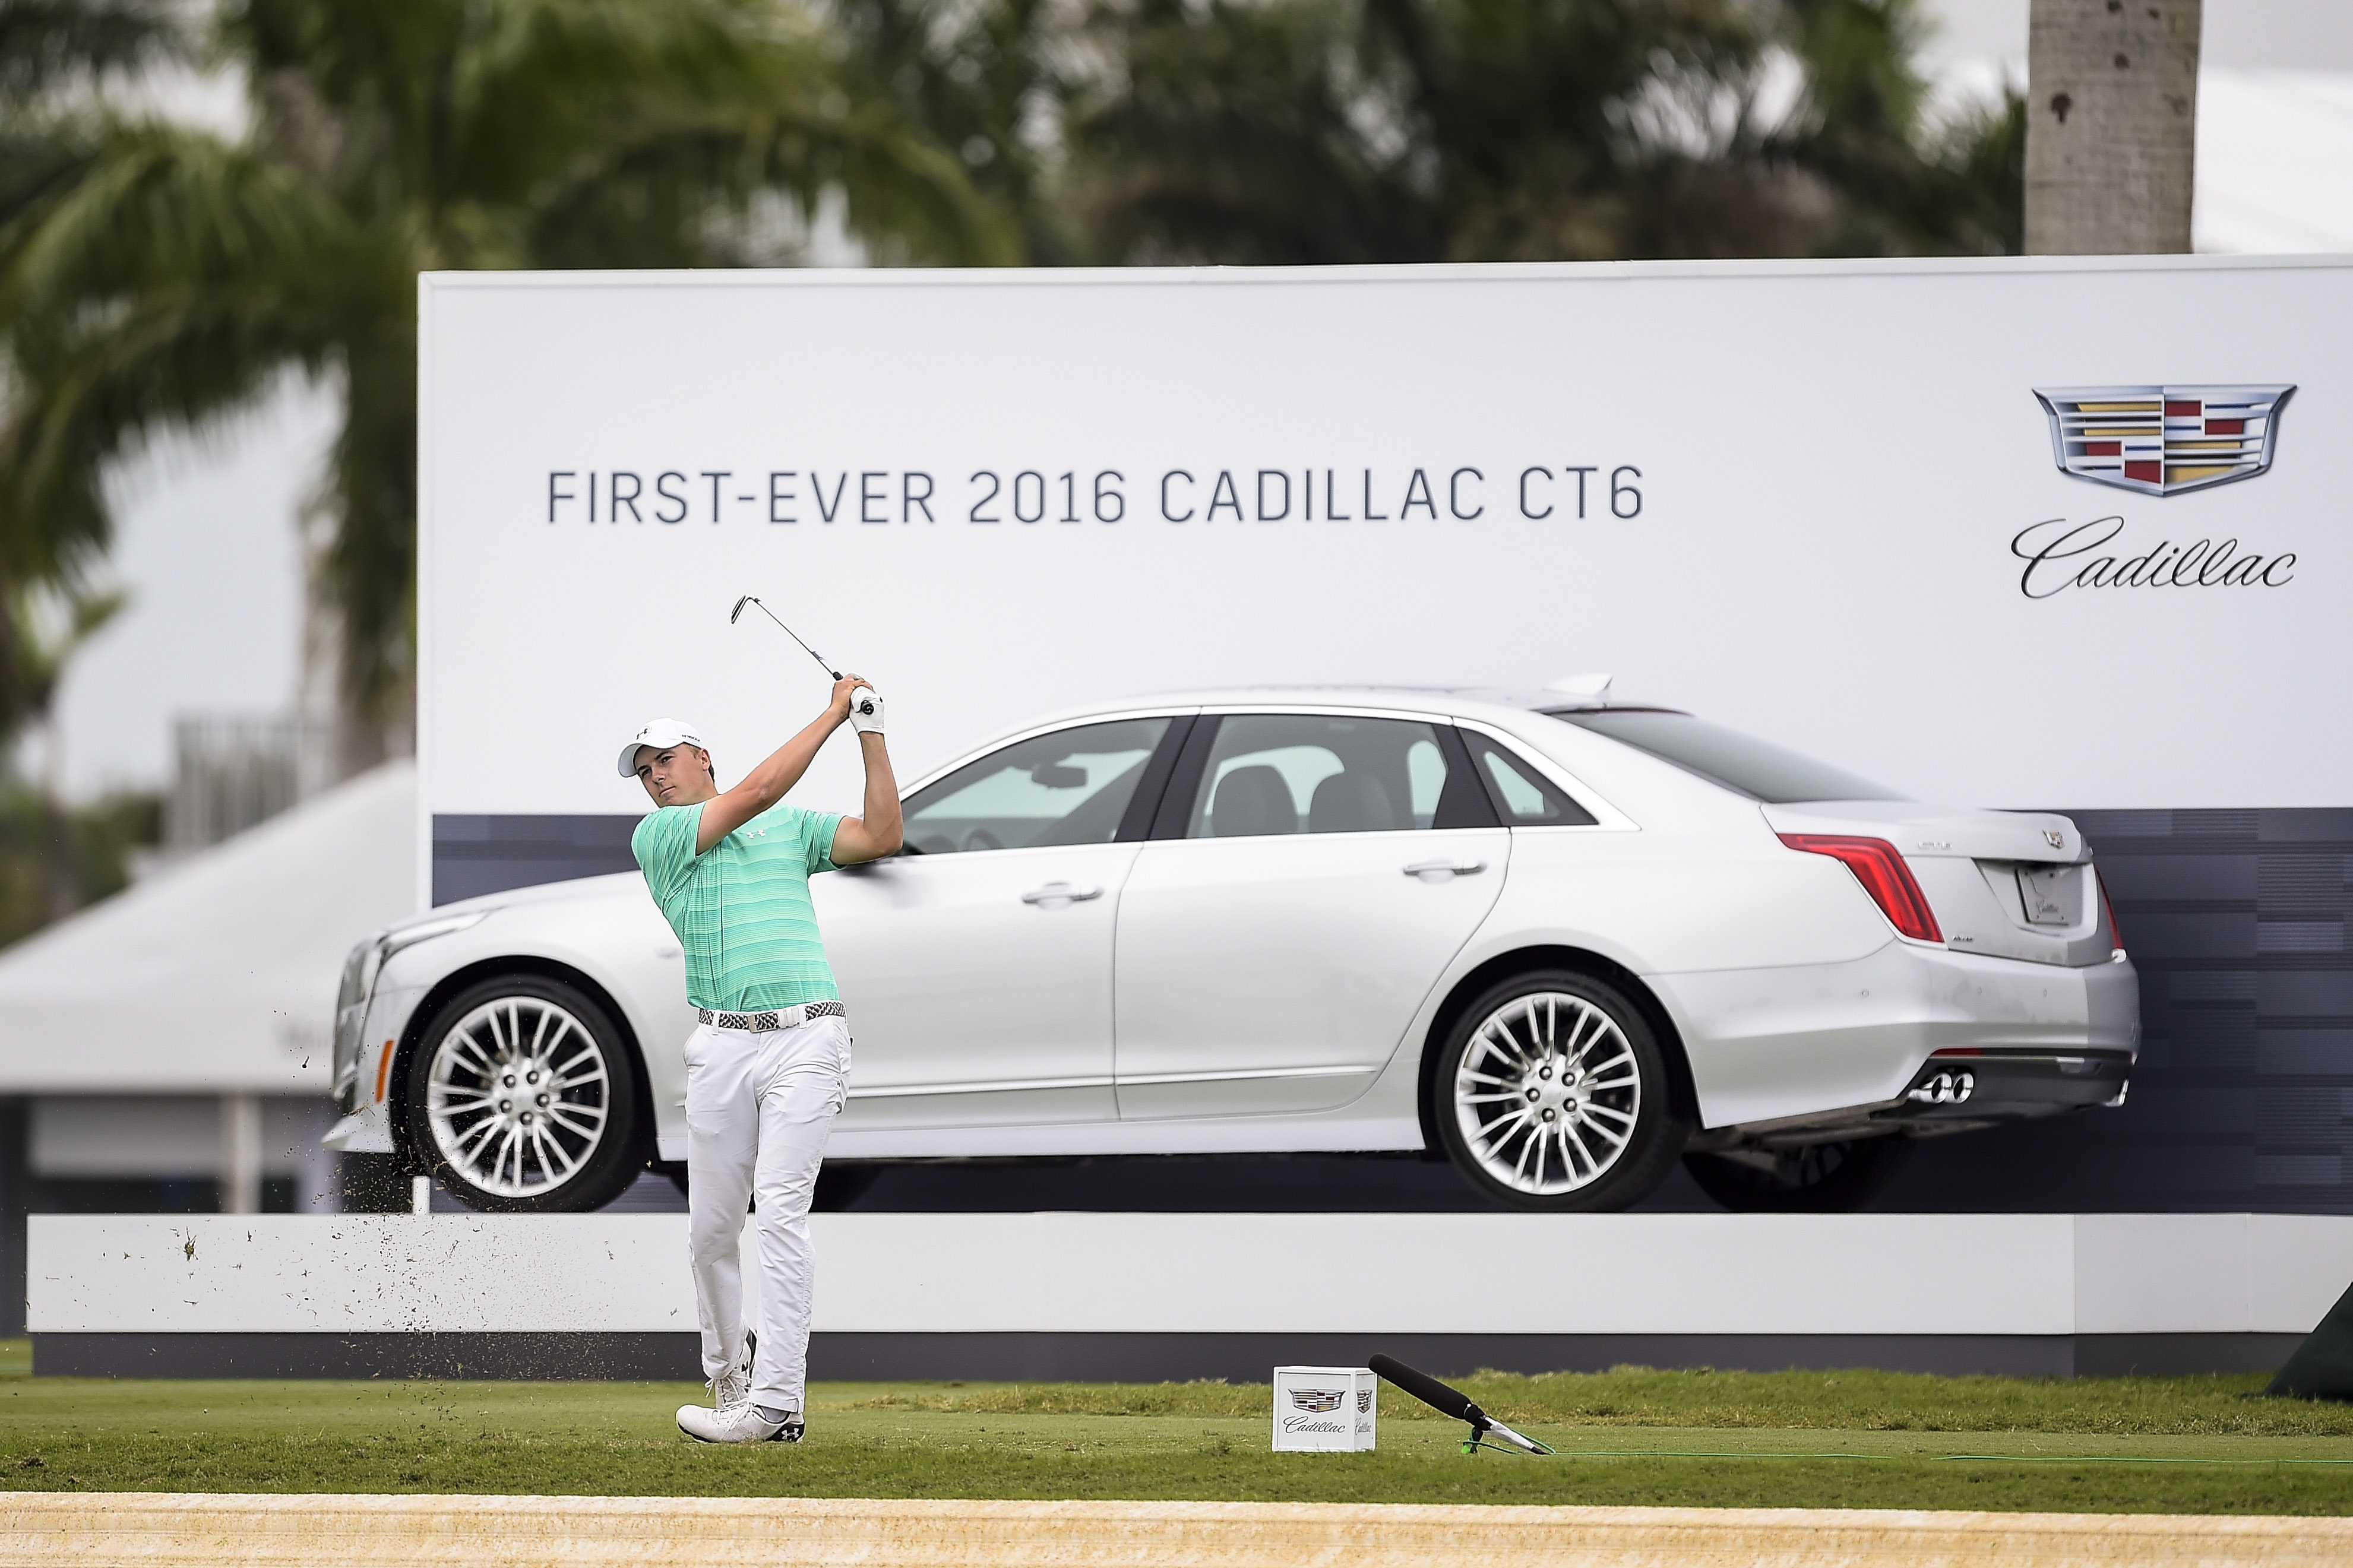 2016 wgc cadillac championship. Cars Review. Best American Auto & Cars Review